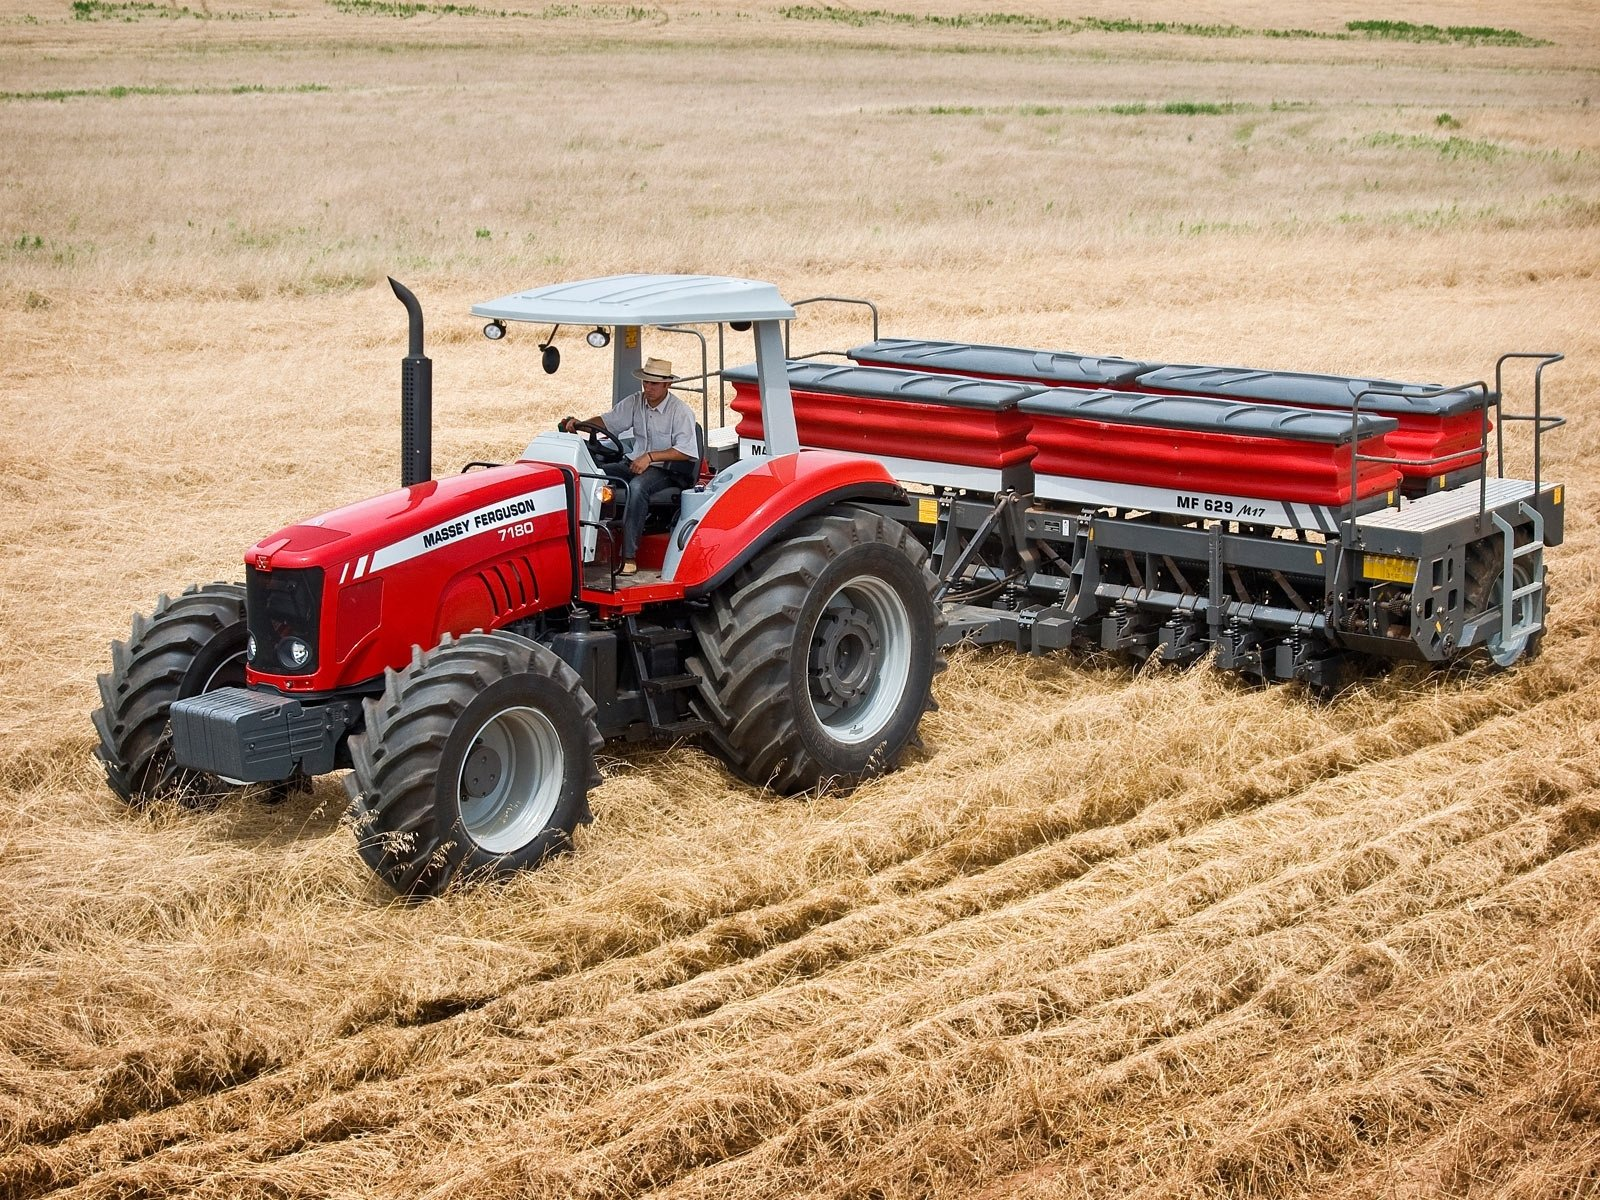 44 Tractor HD Wallpapers